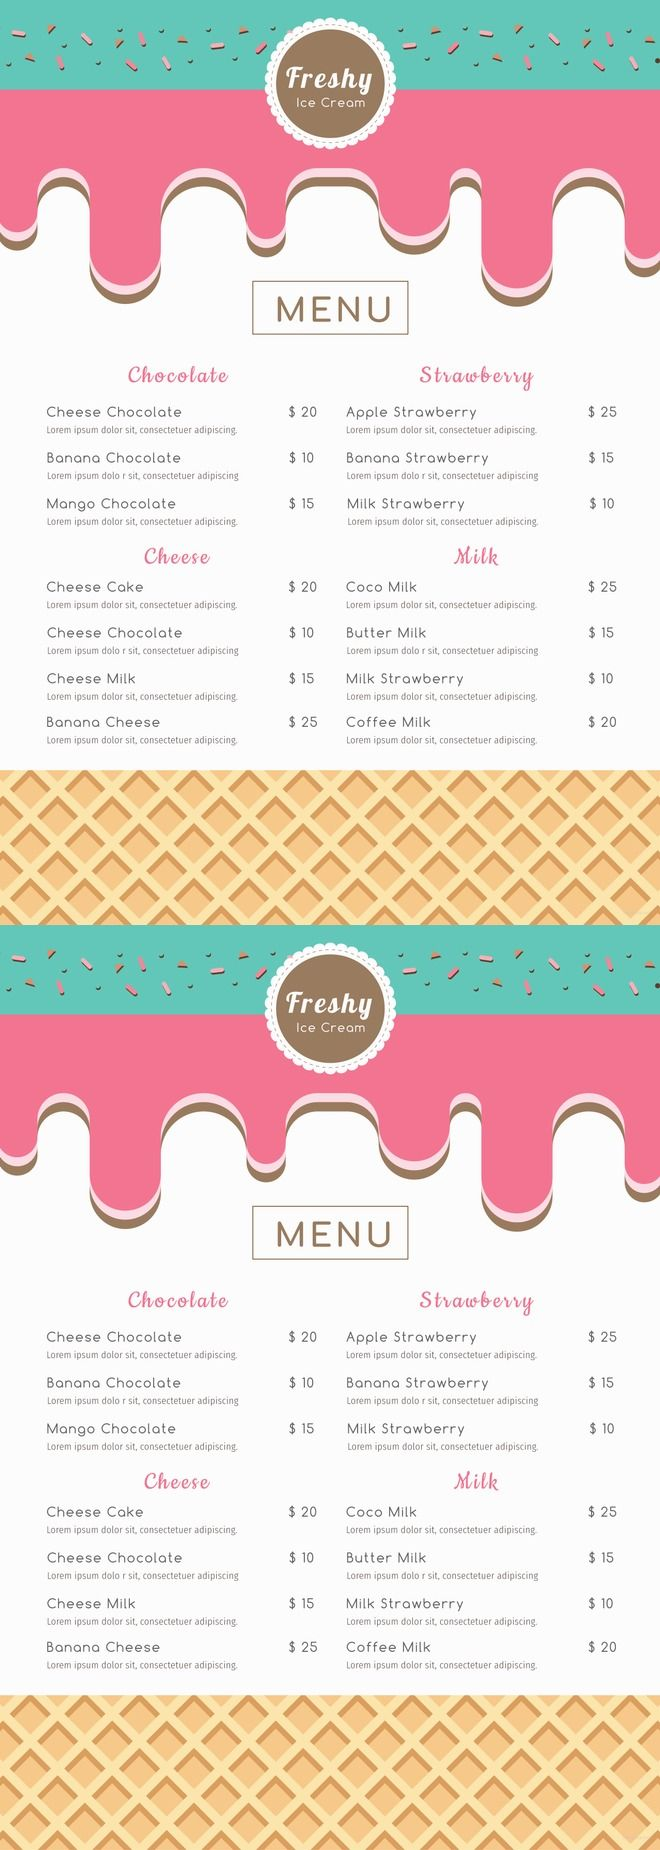 10 best Free Menu Templates images on Pinterest